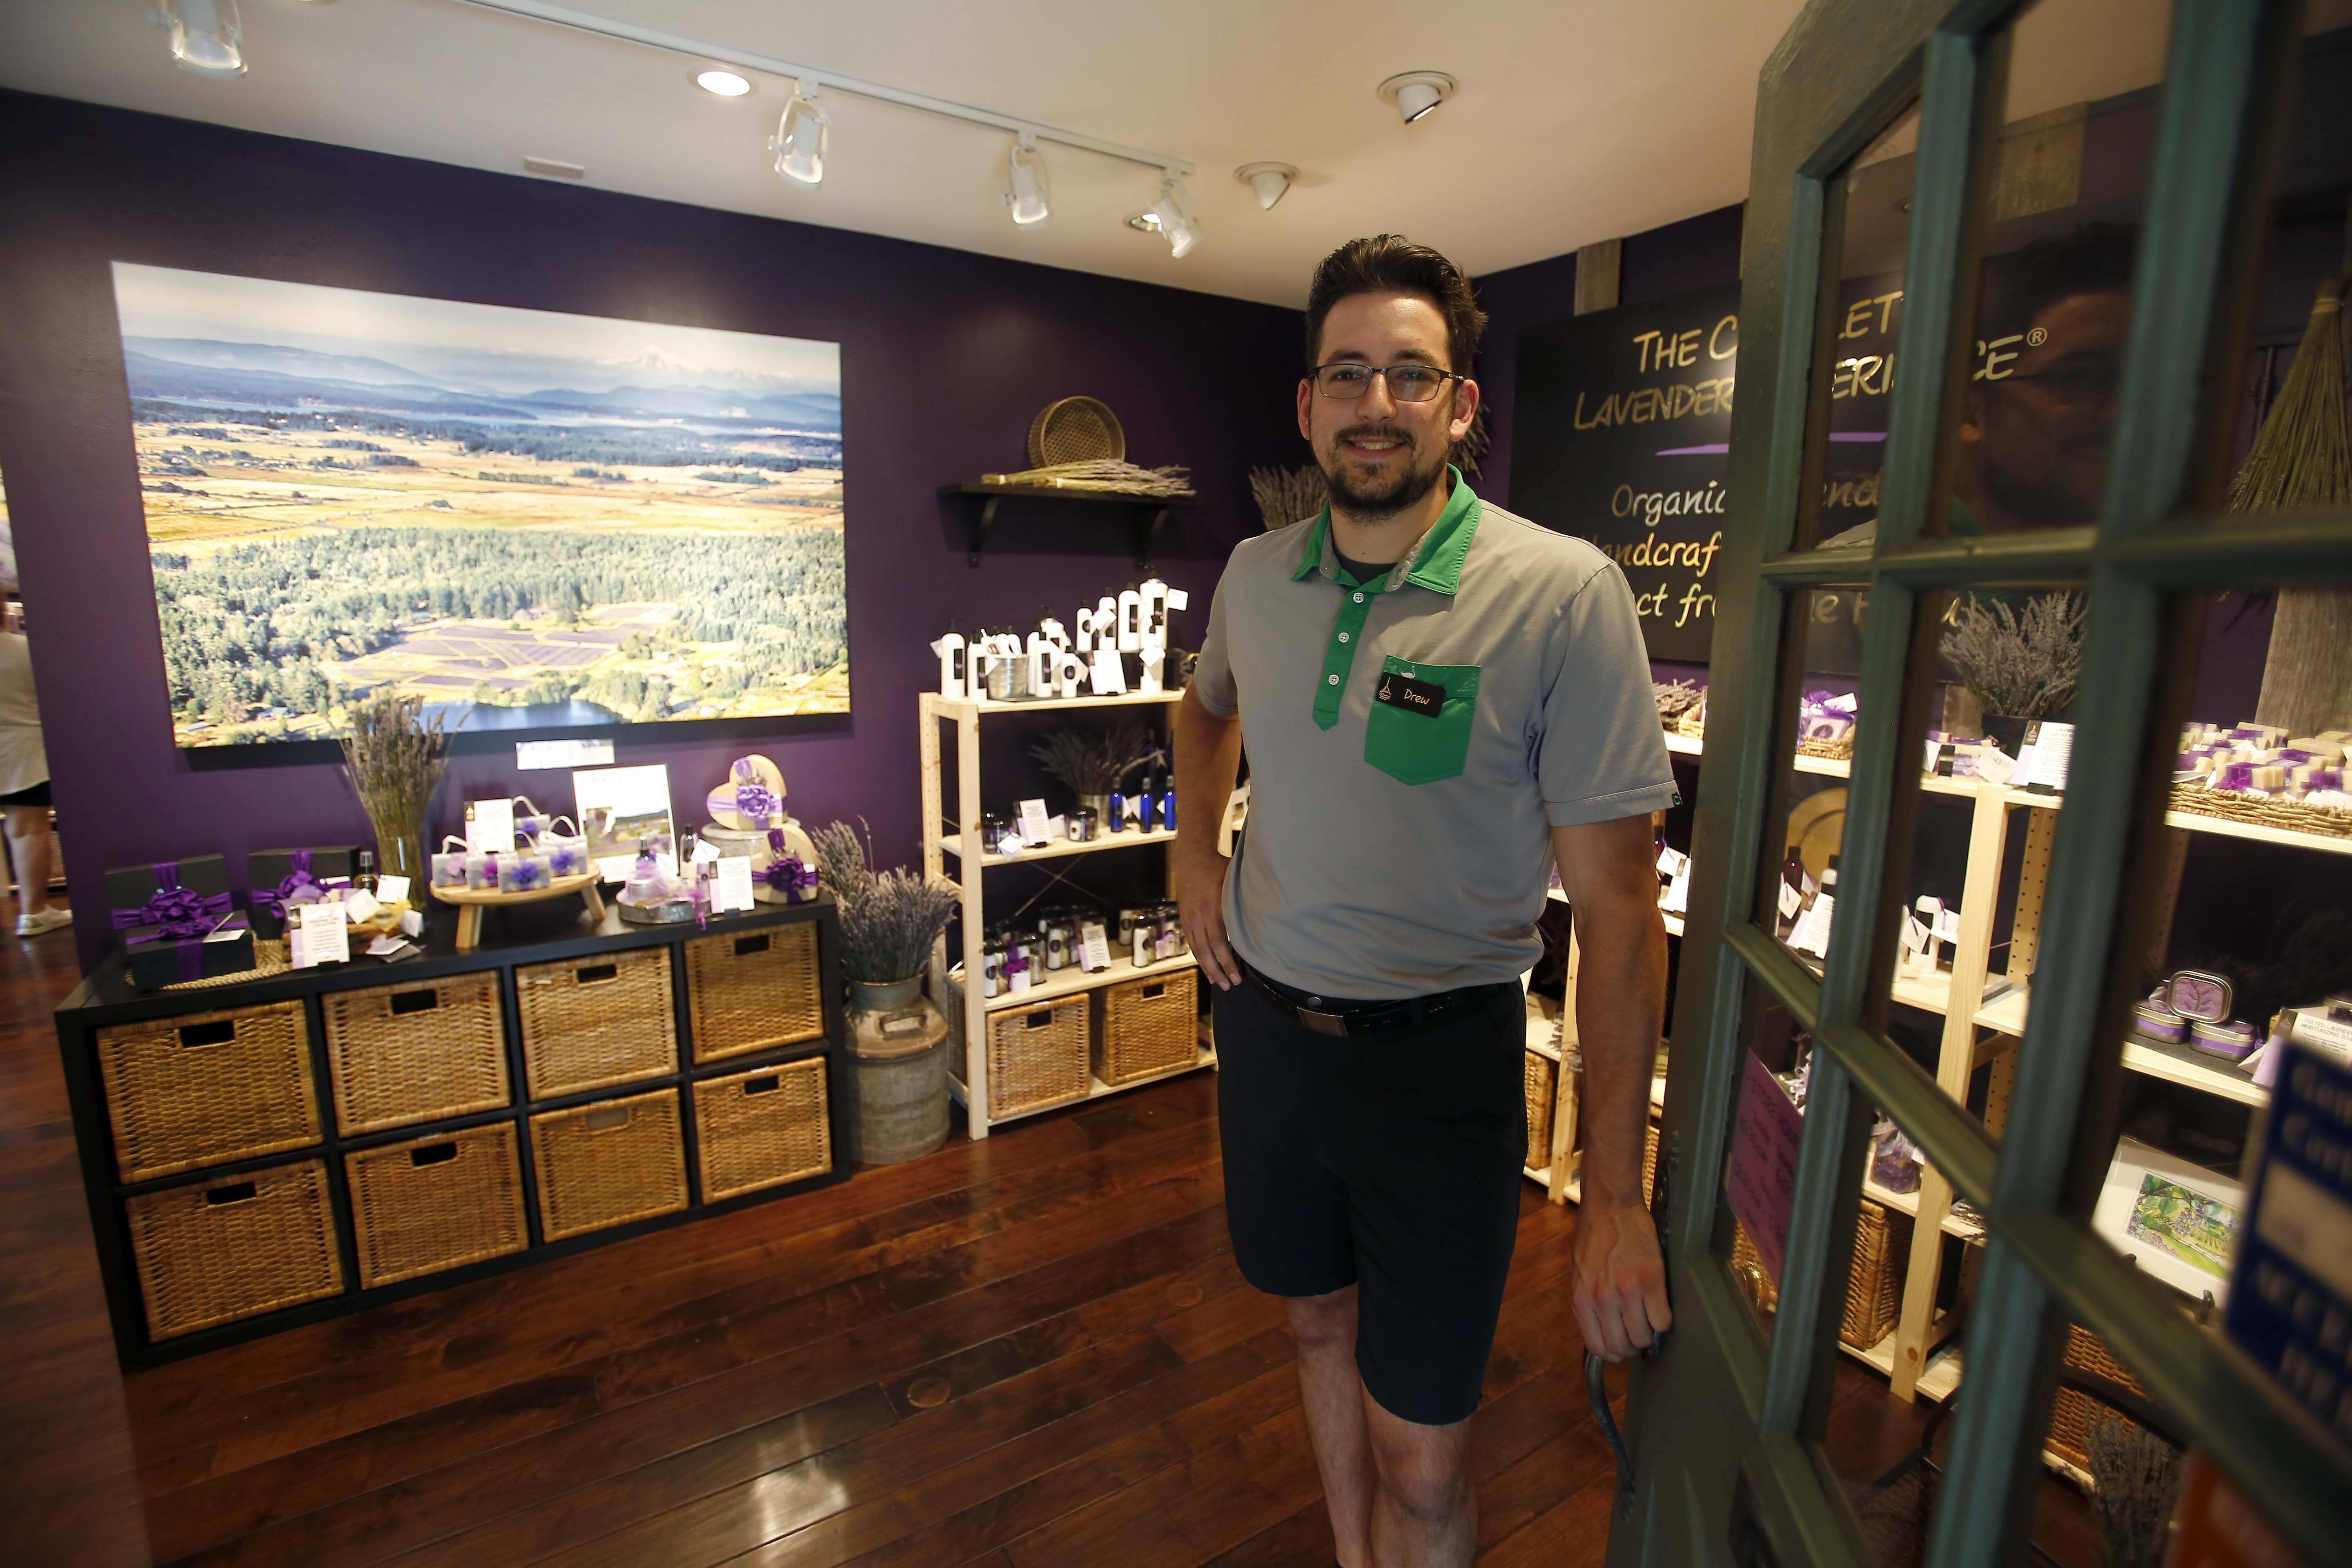 Pelindaba Lavender at 310 Campbell St. in Geneva is stocked with lavender products that cover an array of uses -- culinary, personal care, therapy and pet care.